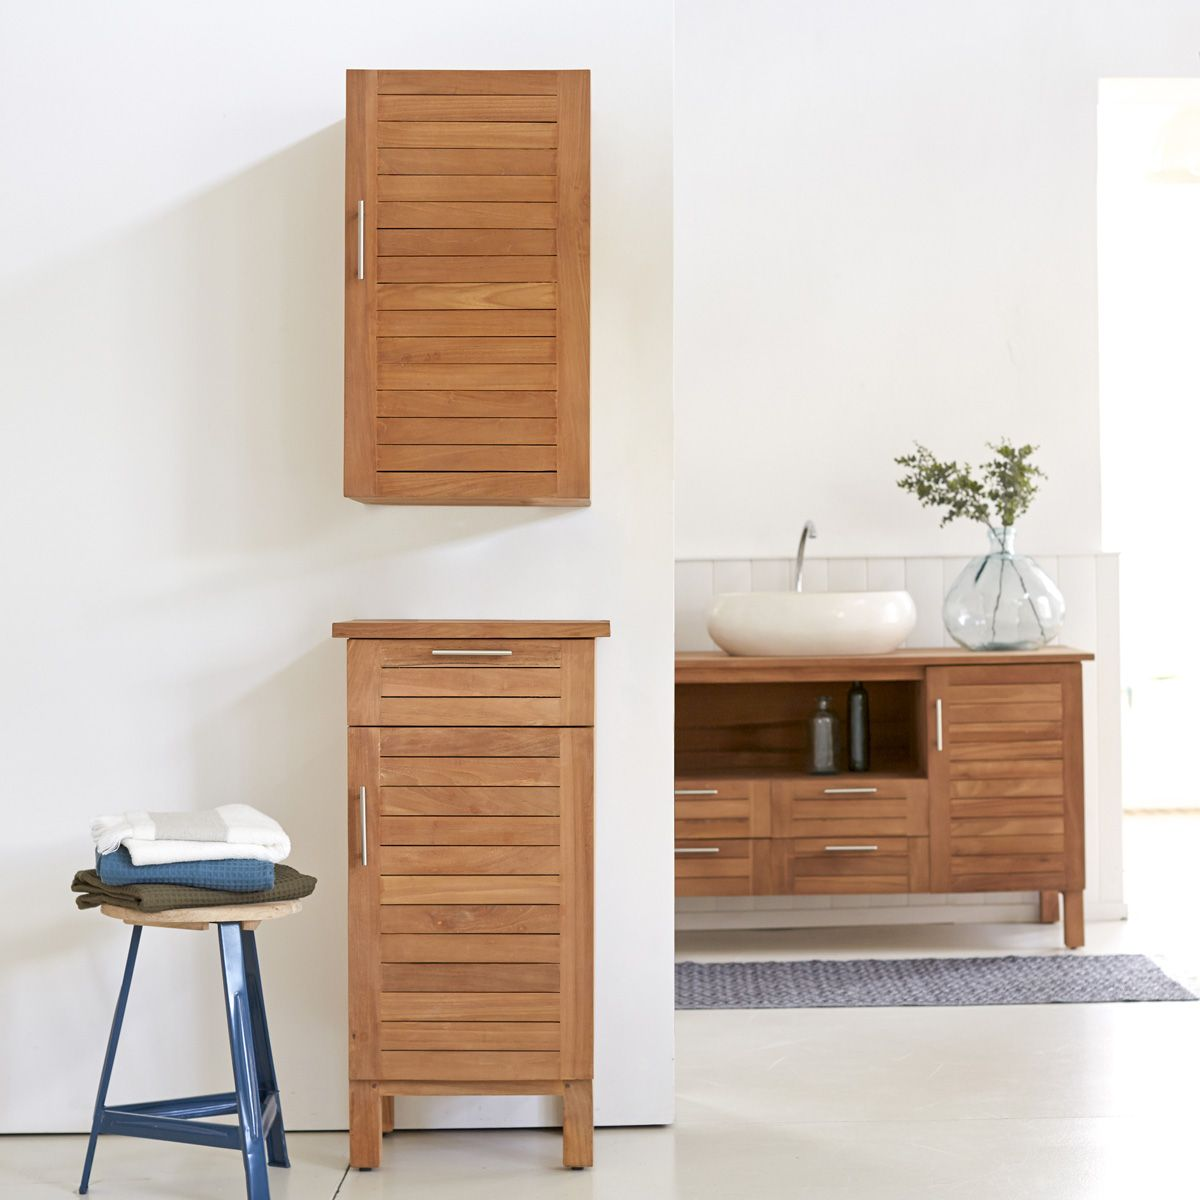 balance-through-bathroom-storage-tower-8 | home accessories